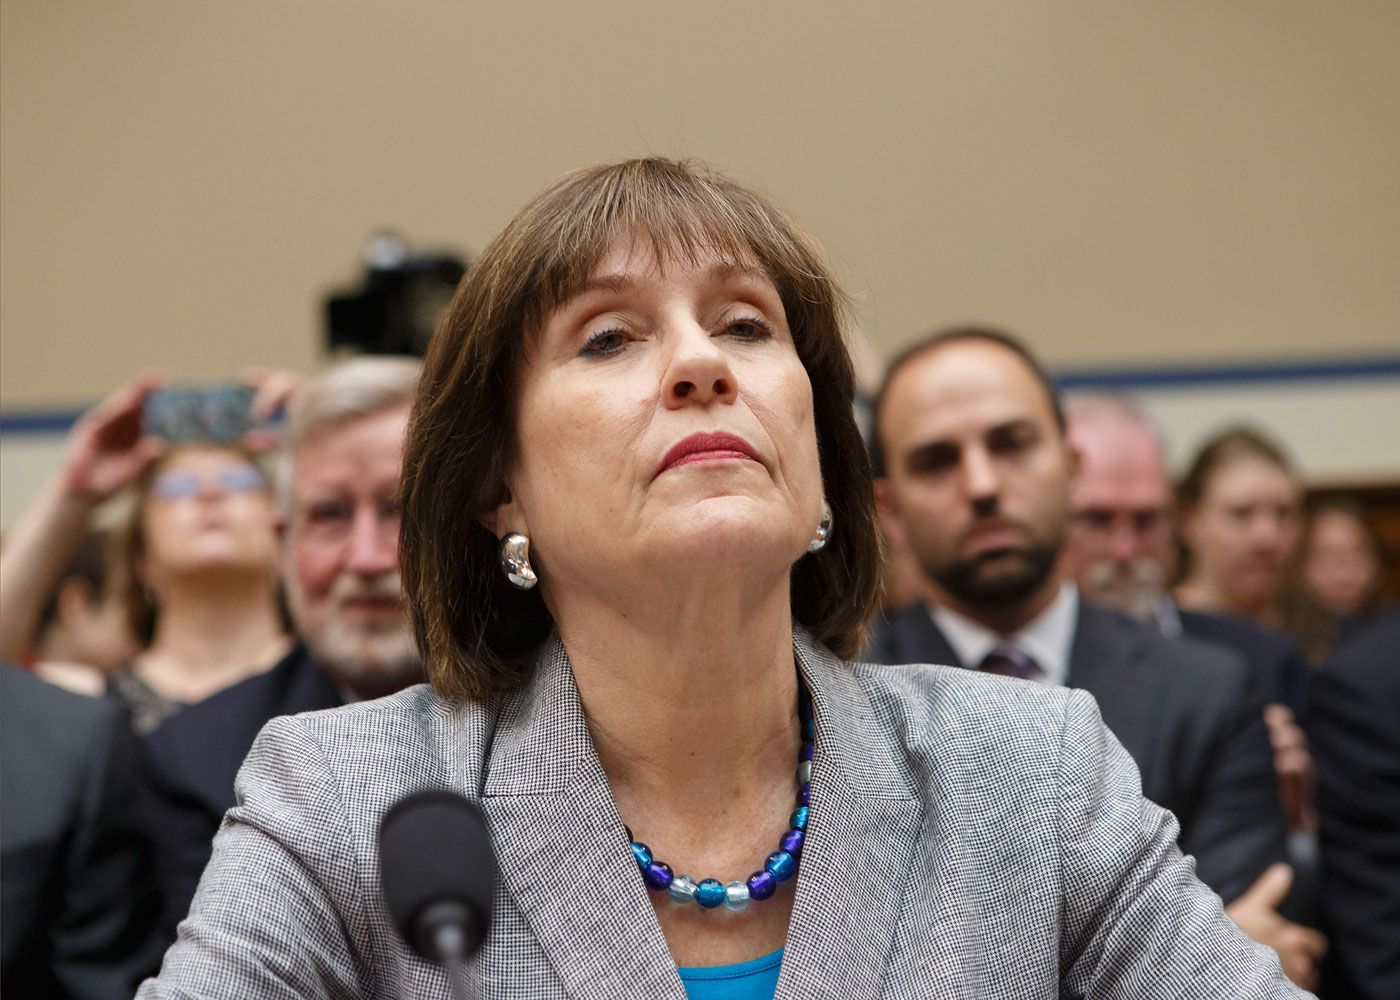 Internal Revenue Service official Lois Lerner during a hearing by the House Oversight Committee on Capitol Hill in Washington, May 22, 2013.